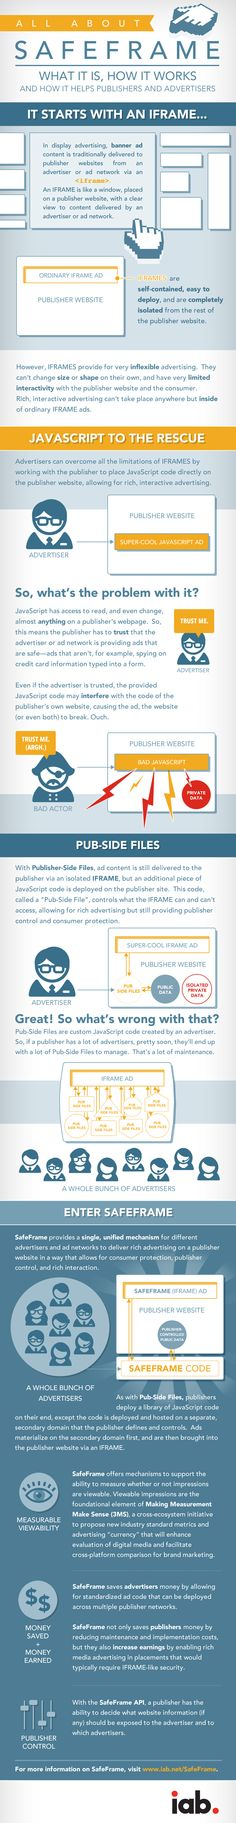 IAB SafeFrame - How to viewable impressions will do away with javascript and iframe ads.  #infographic